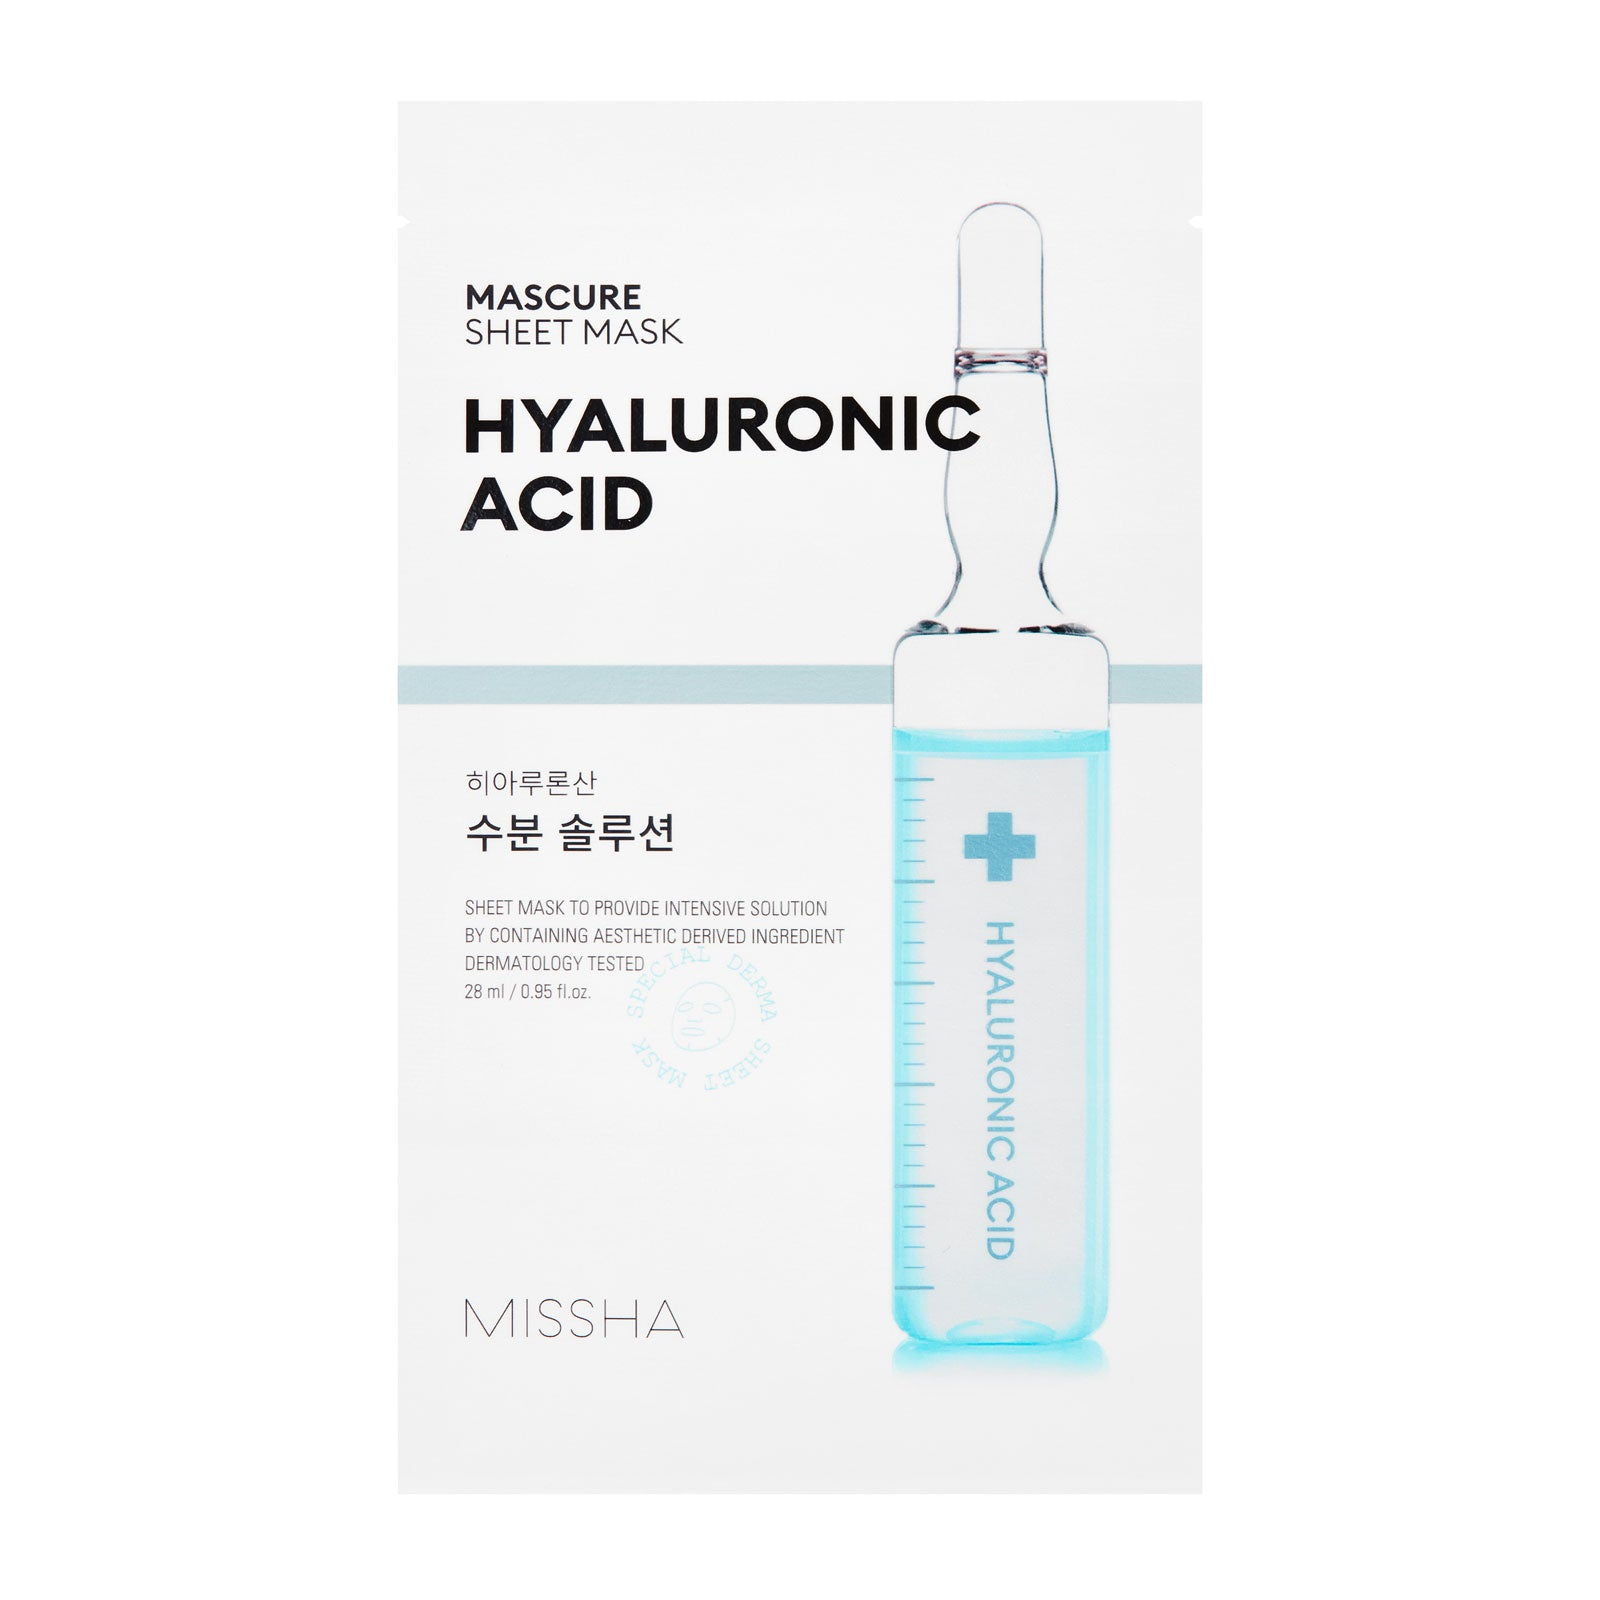 MISSHA Mascure Hyaluronic Acid Hydra Sheet Mask 27ml